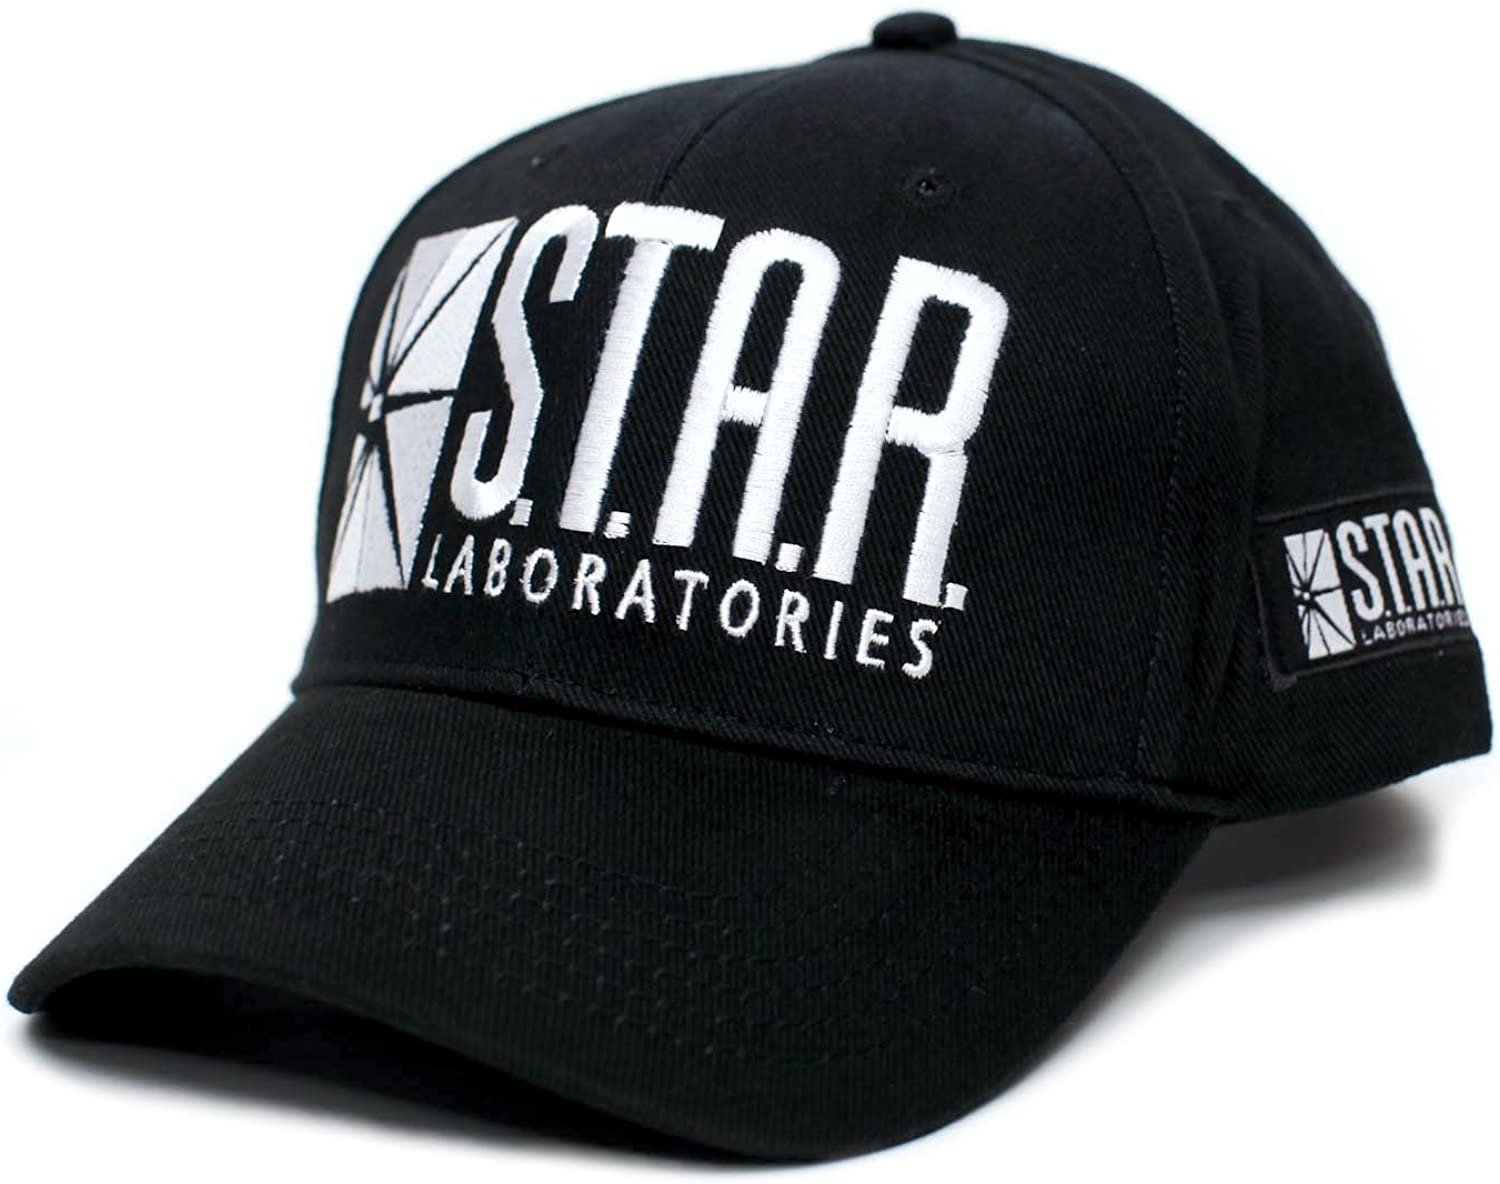 Star 35% OFF Labs Laboratories Embroidered Hat Adult Cap Max 80% OFF Unisex S.T.A.R.